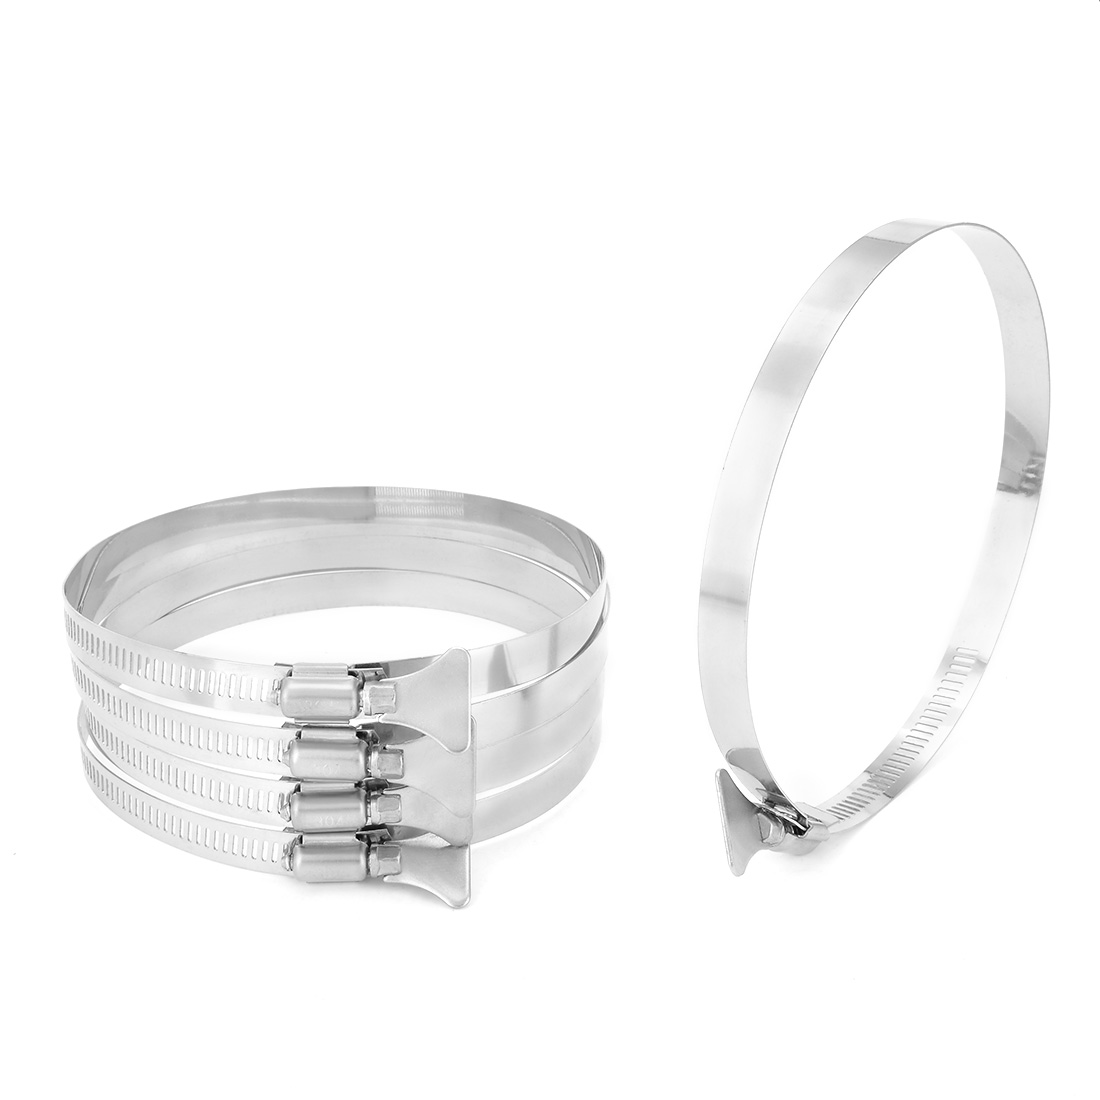 91mm-114mm Clamping Range 304 Stainless Steel Butterfly Hose Clamp 5pcs